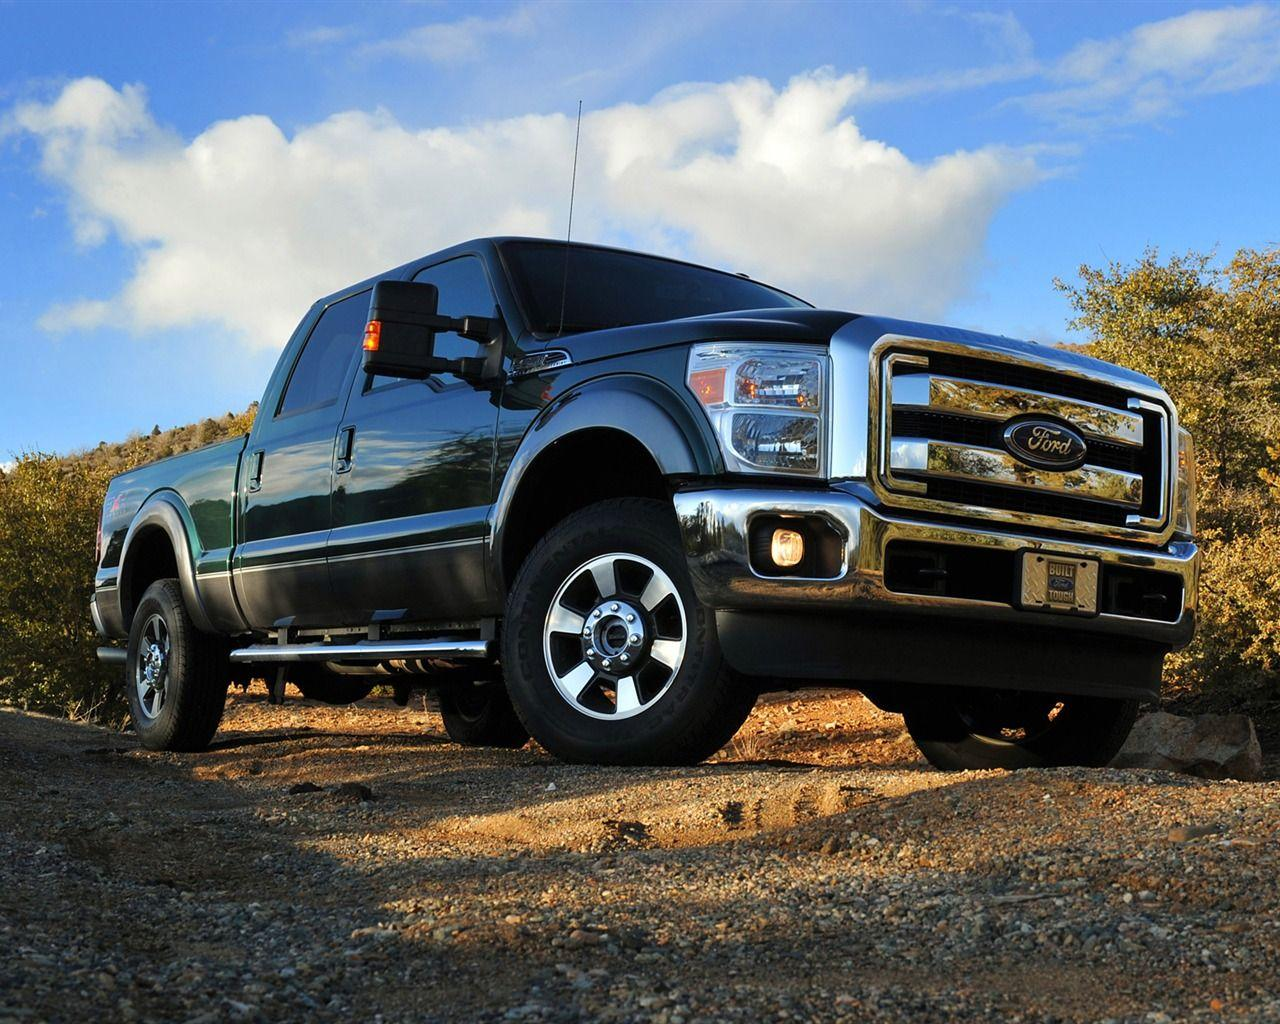 Ford F250 Super Duty - 2011 HD wallpaper #1 - 1280x1024 Wallpaper ...